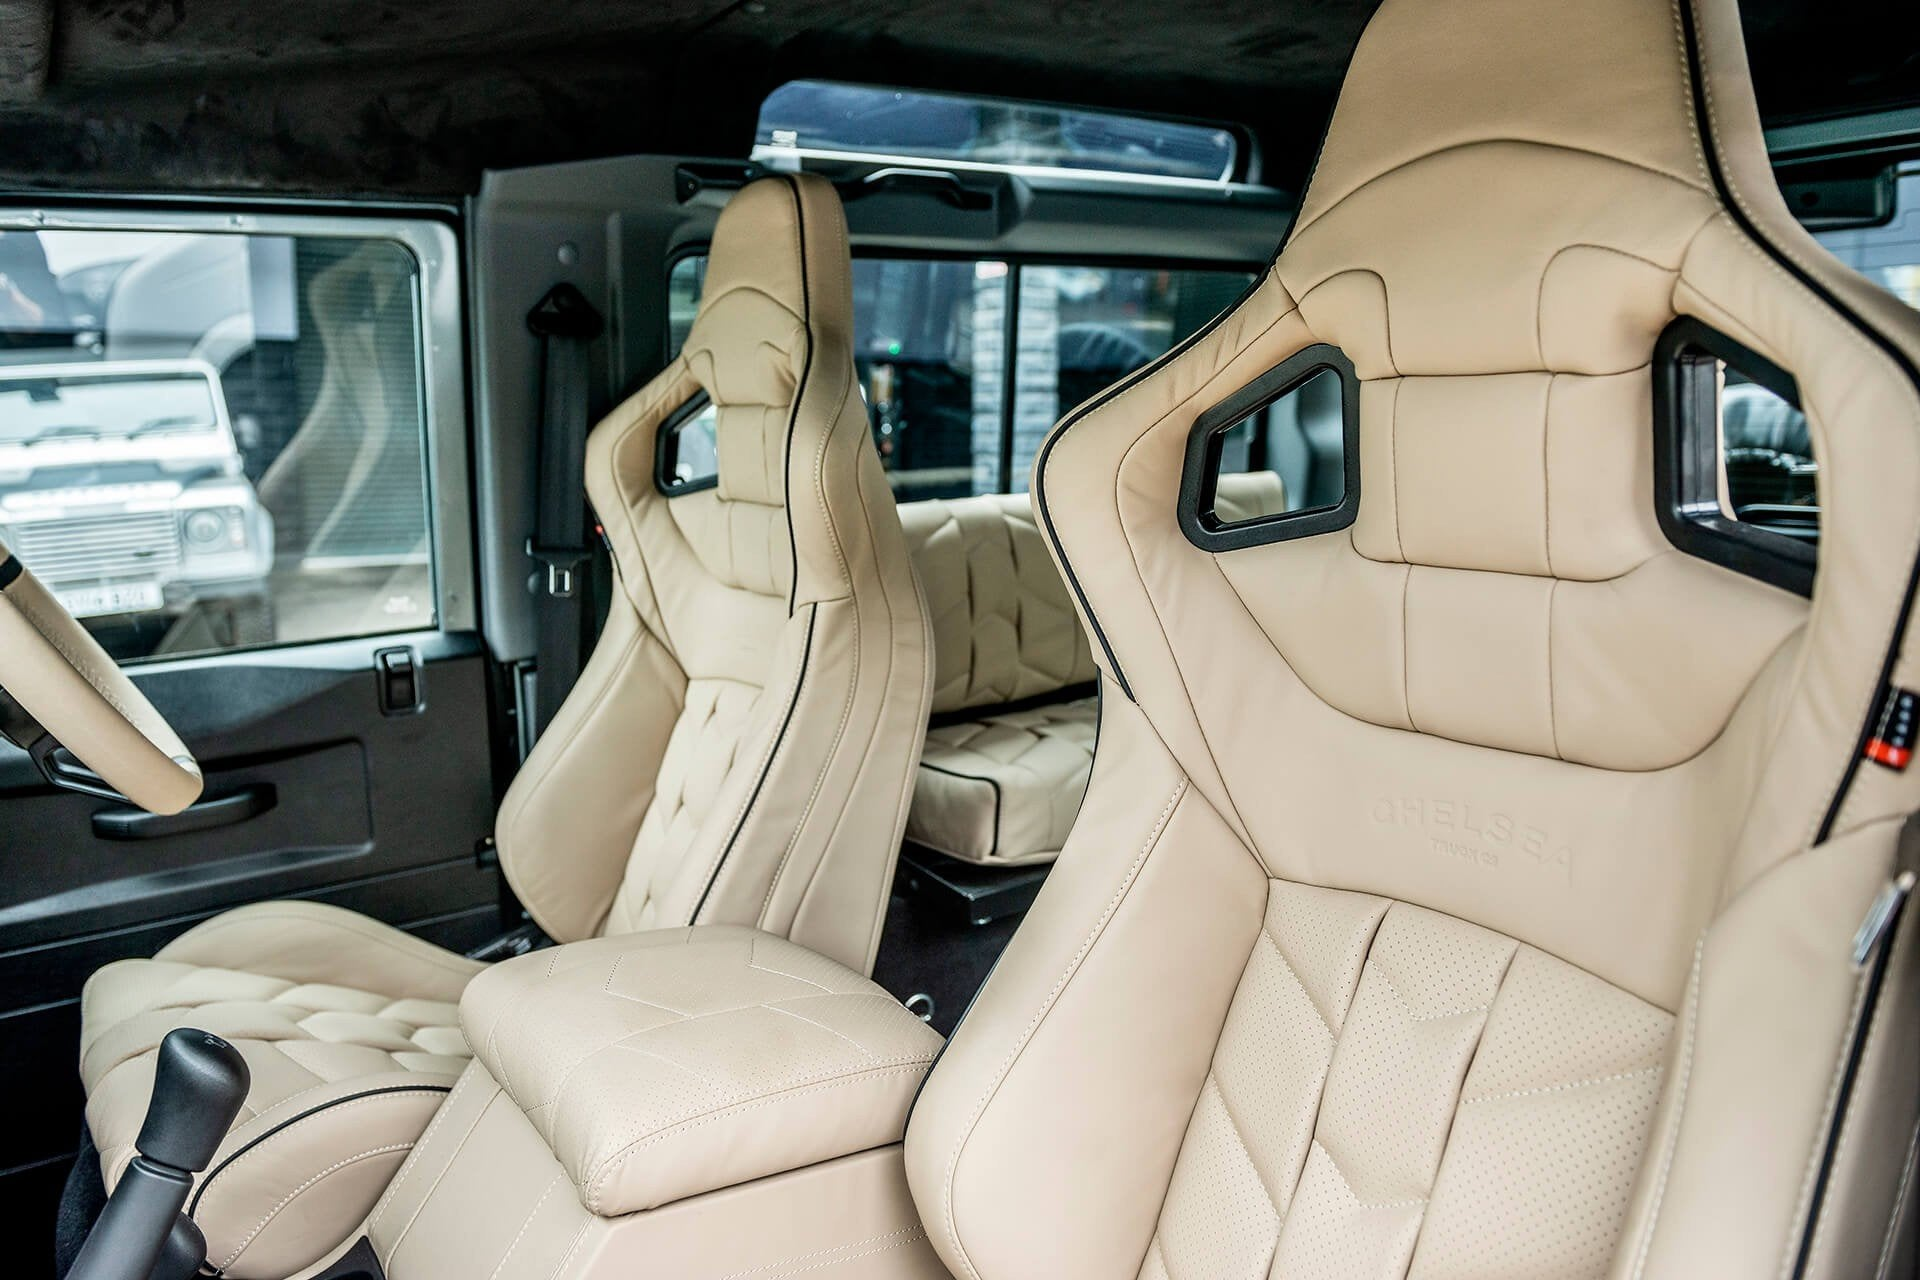 Land Rover Defender 90 (1991-2016) Leather Interior 6 Seat Conversion by Chelsea Truck Company - Image 1482